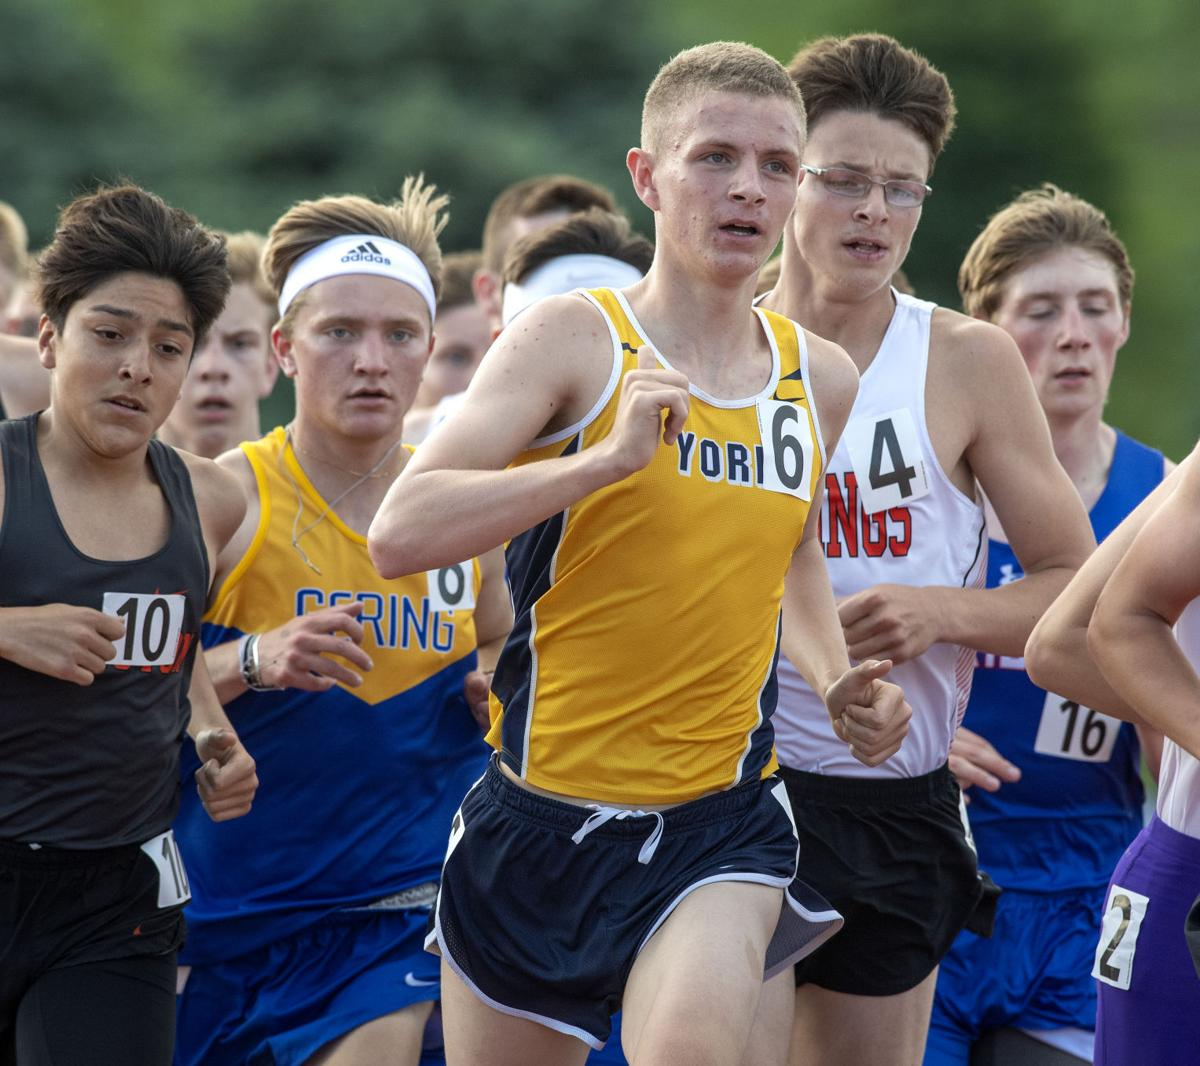 State track and field, 5.21